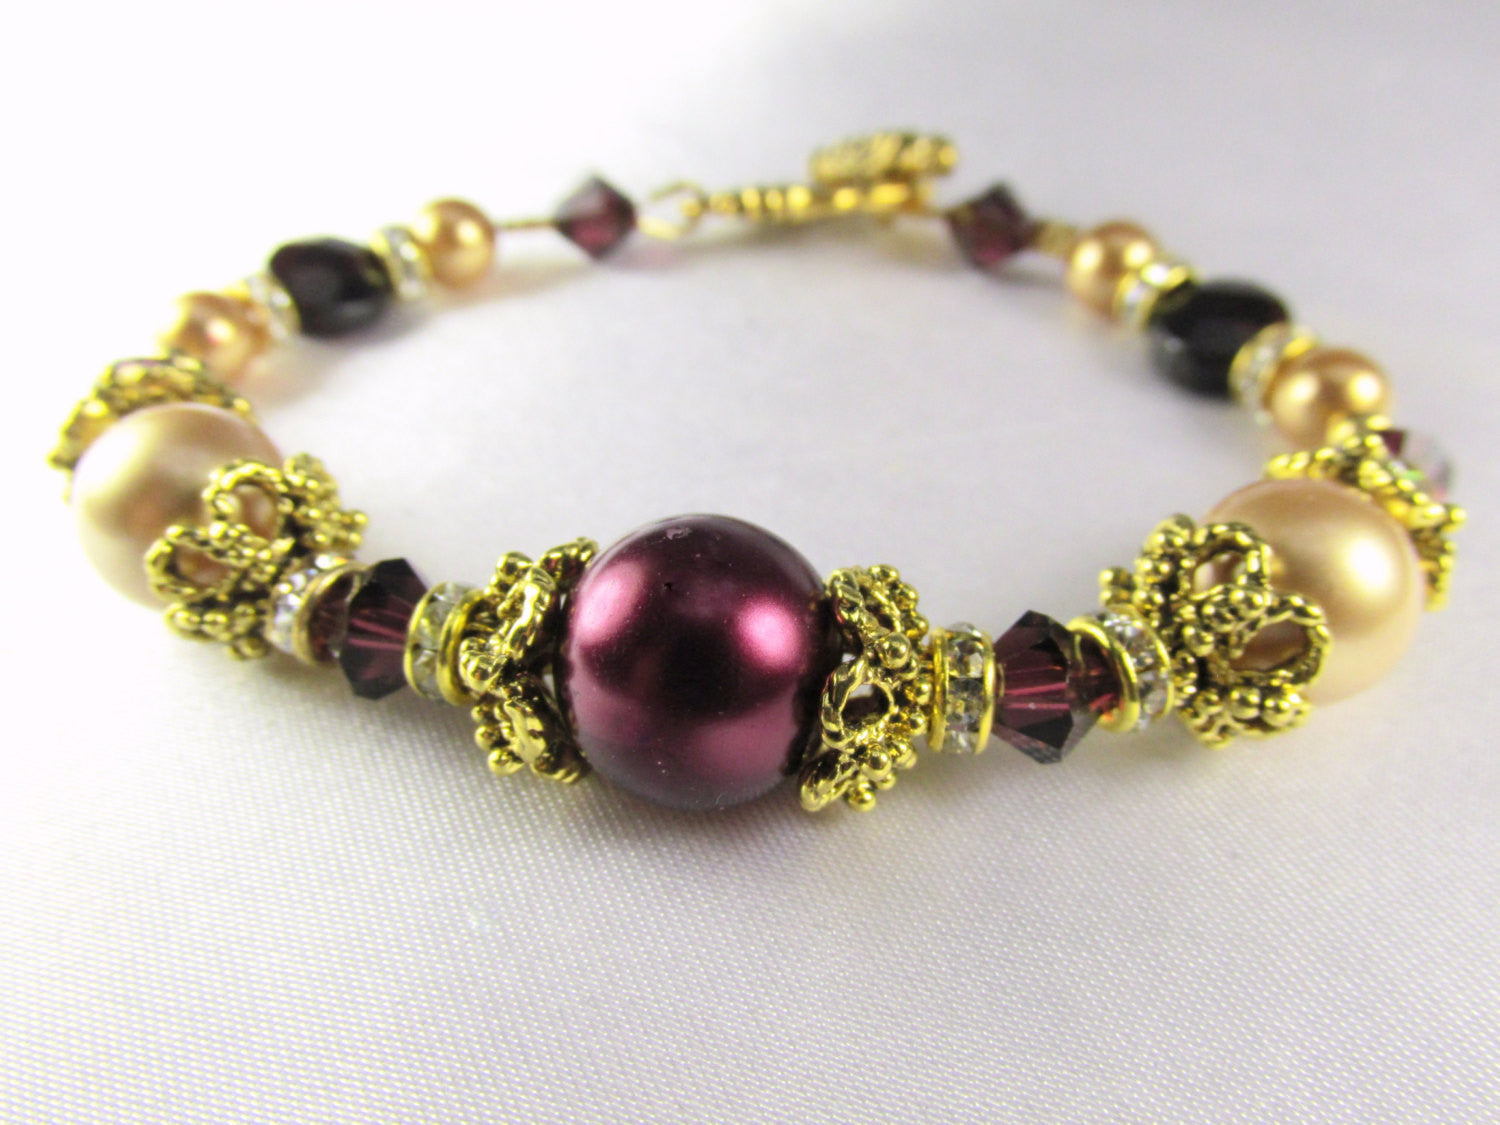 Bridal or Bridemaid Bracelet in Blackberry Burgundy and Light Gold Swarovski Pearls, Crystals - Odyssey Creations